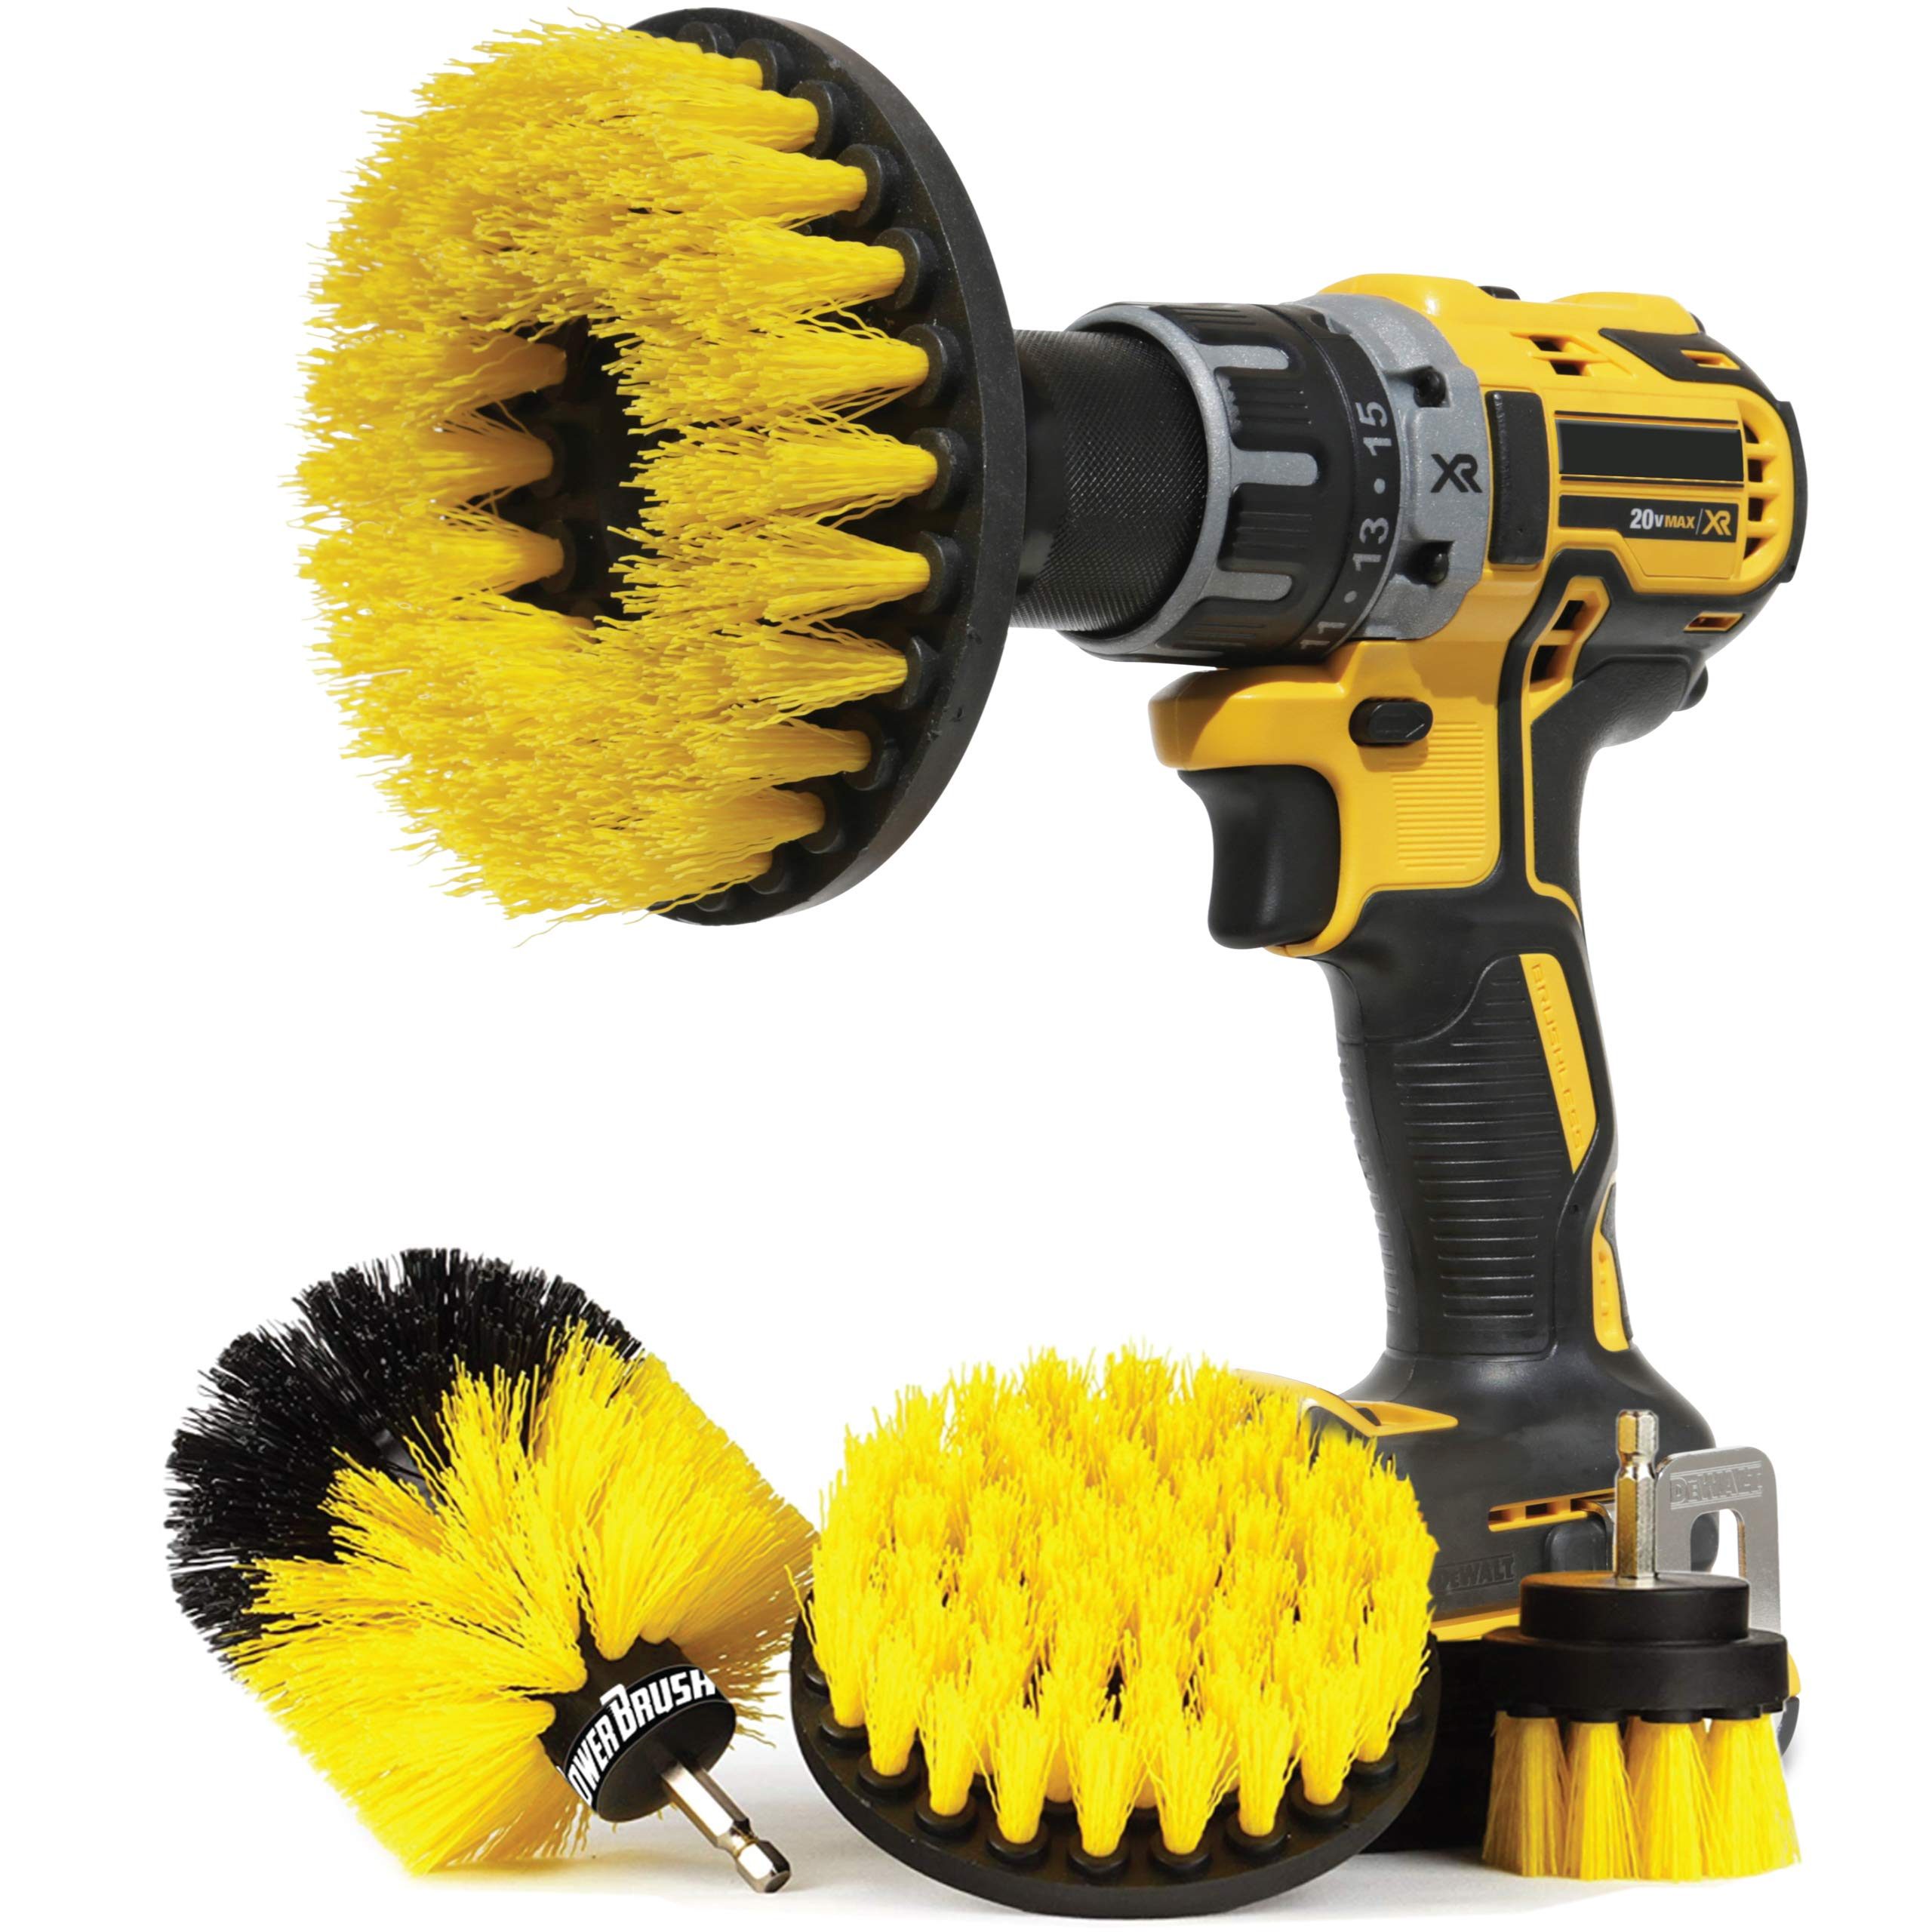 Wheel Brush Kit for Tire and Rim Cleaning | 4 pc Drill Brush Car Detailing Attachment Set | Auto Detail and Scrub Brushes | Car Wash Supplies for Cleaner Cars, RVs, Tires, Rims, Wheels, and Vehicles